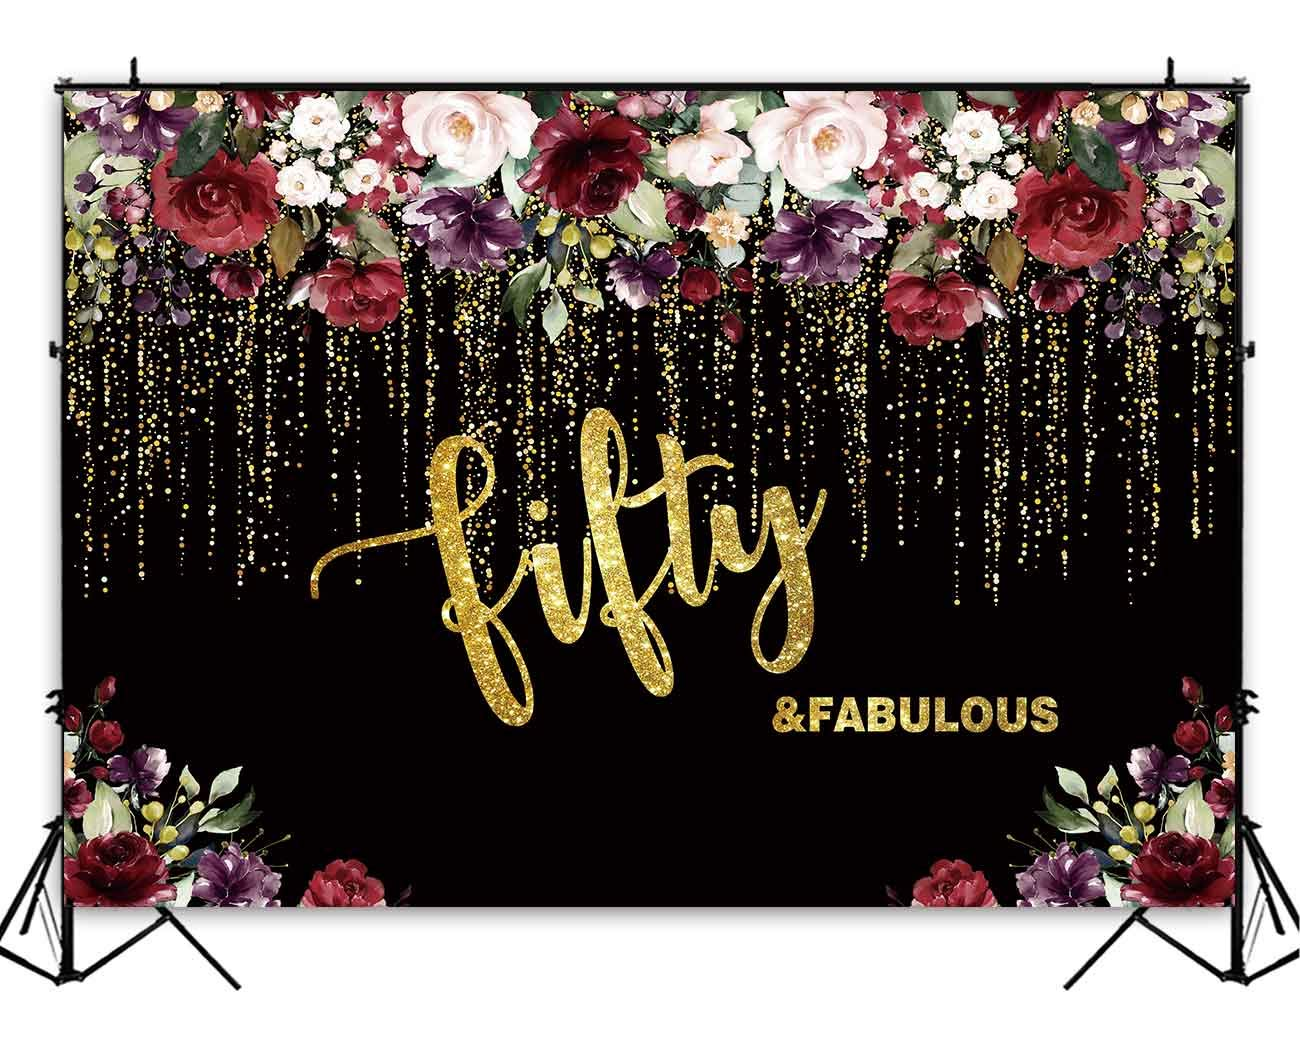 Funnytree 8x6ft Durable Fabric Graduation Party Backdrop No Wrinkles Class of 2020 Rustic Wood Flamingo Floral Photography Background Congrats Grad Tropical Flower Decor Photo Booth Dessert Banner